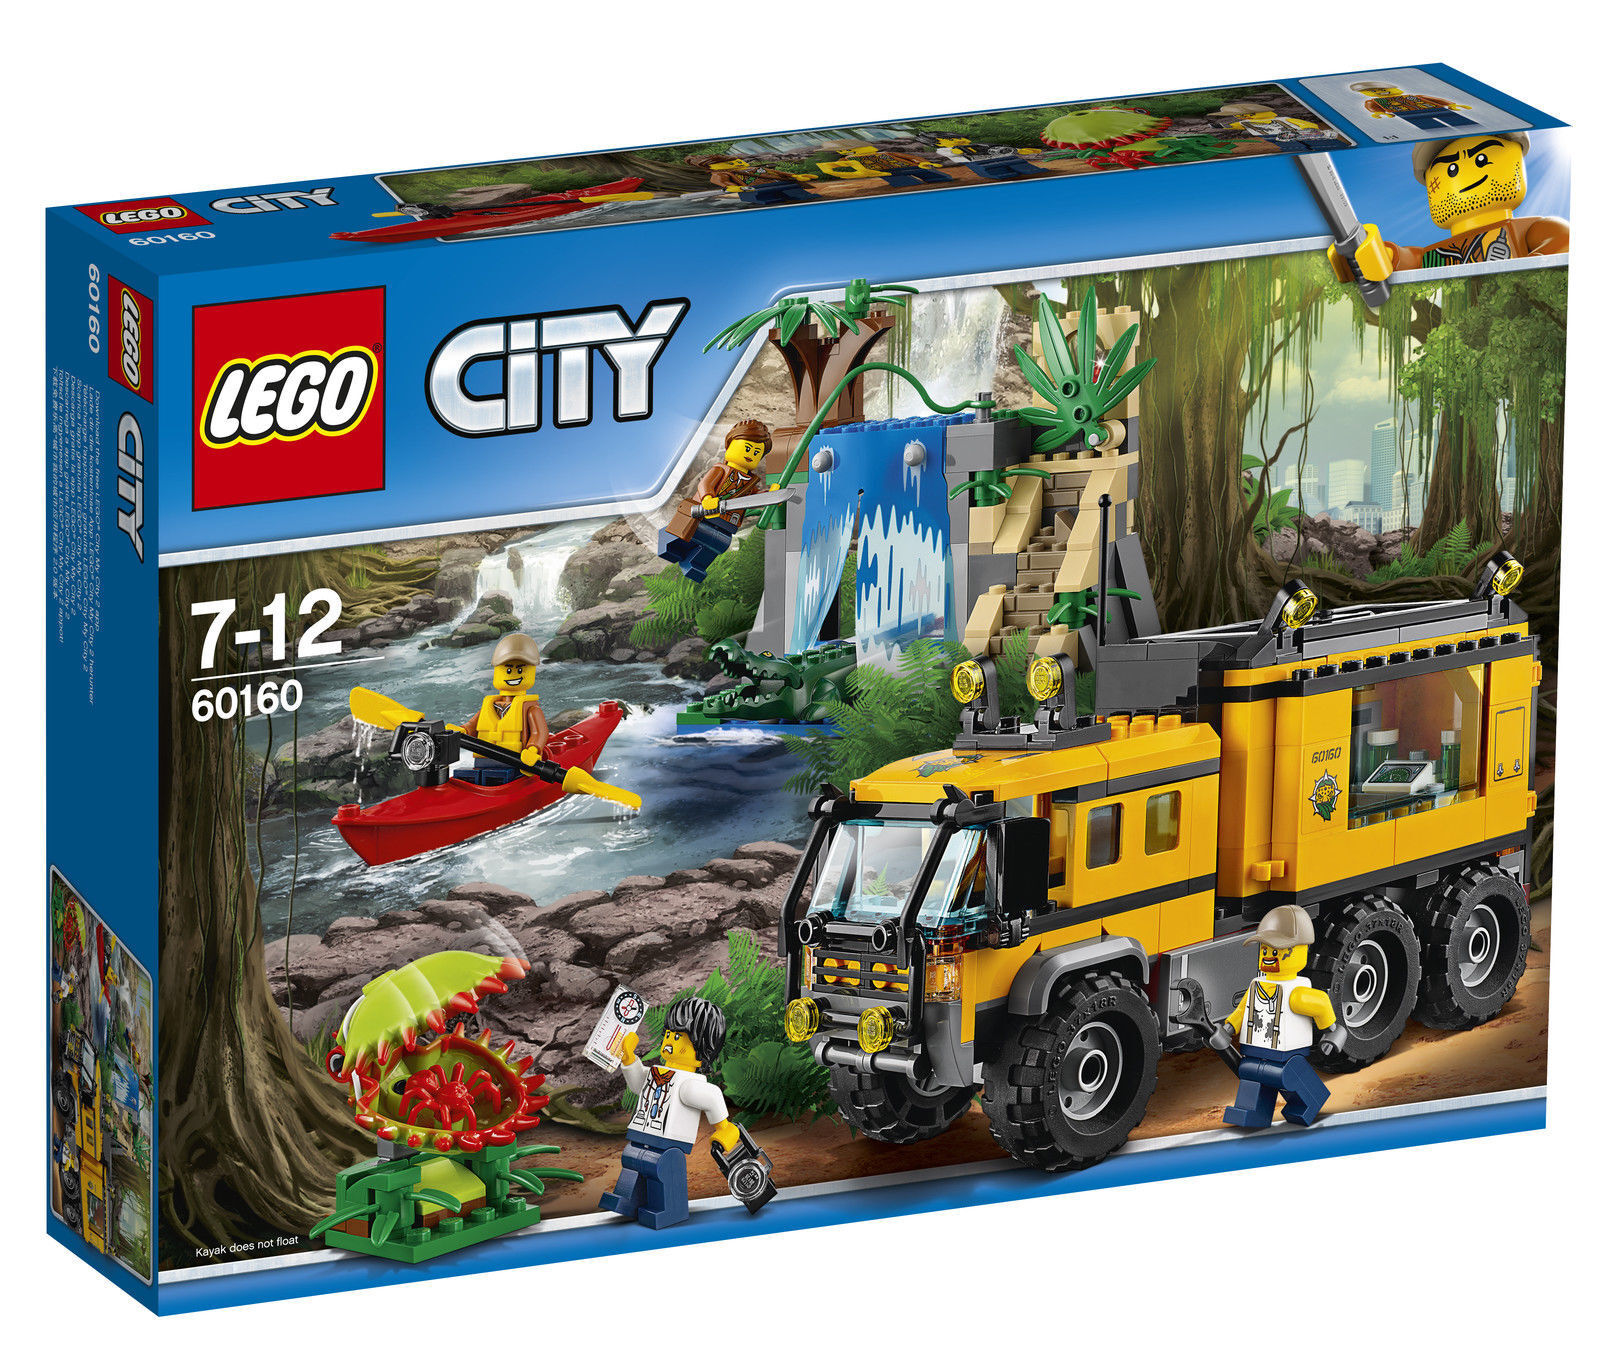 NEW LEGO City Jungle Mobile Lab SET 60160 400+ PIECES 3